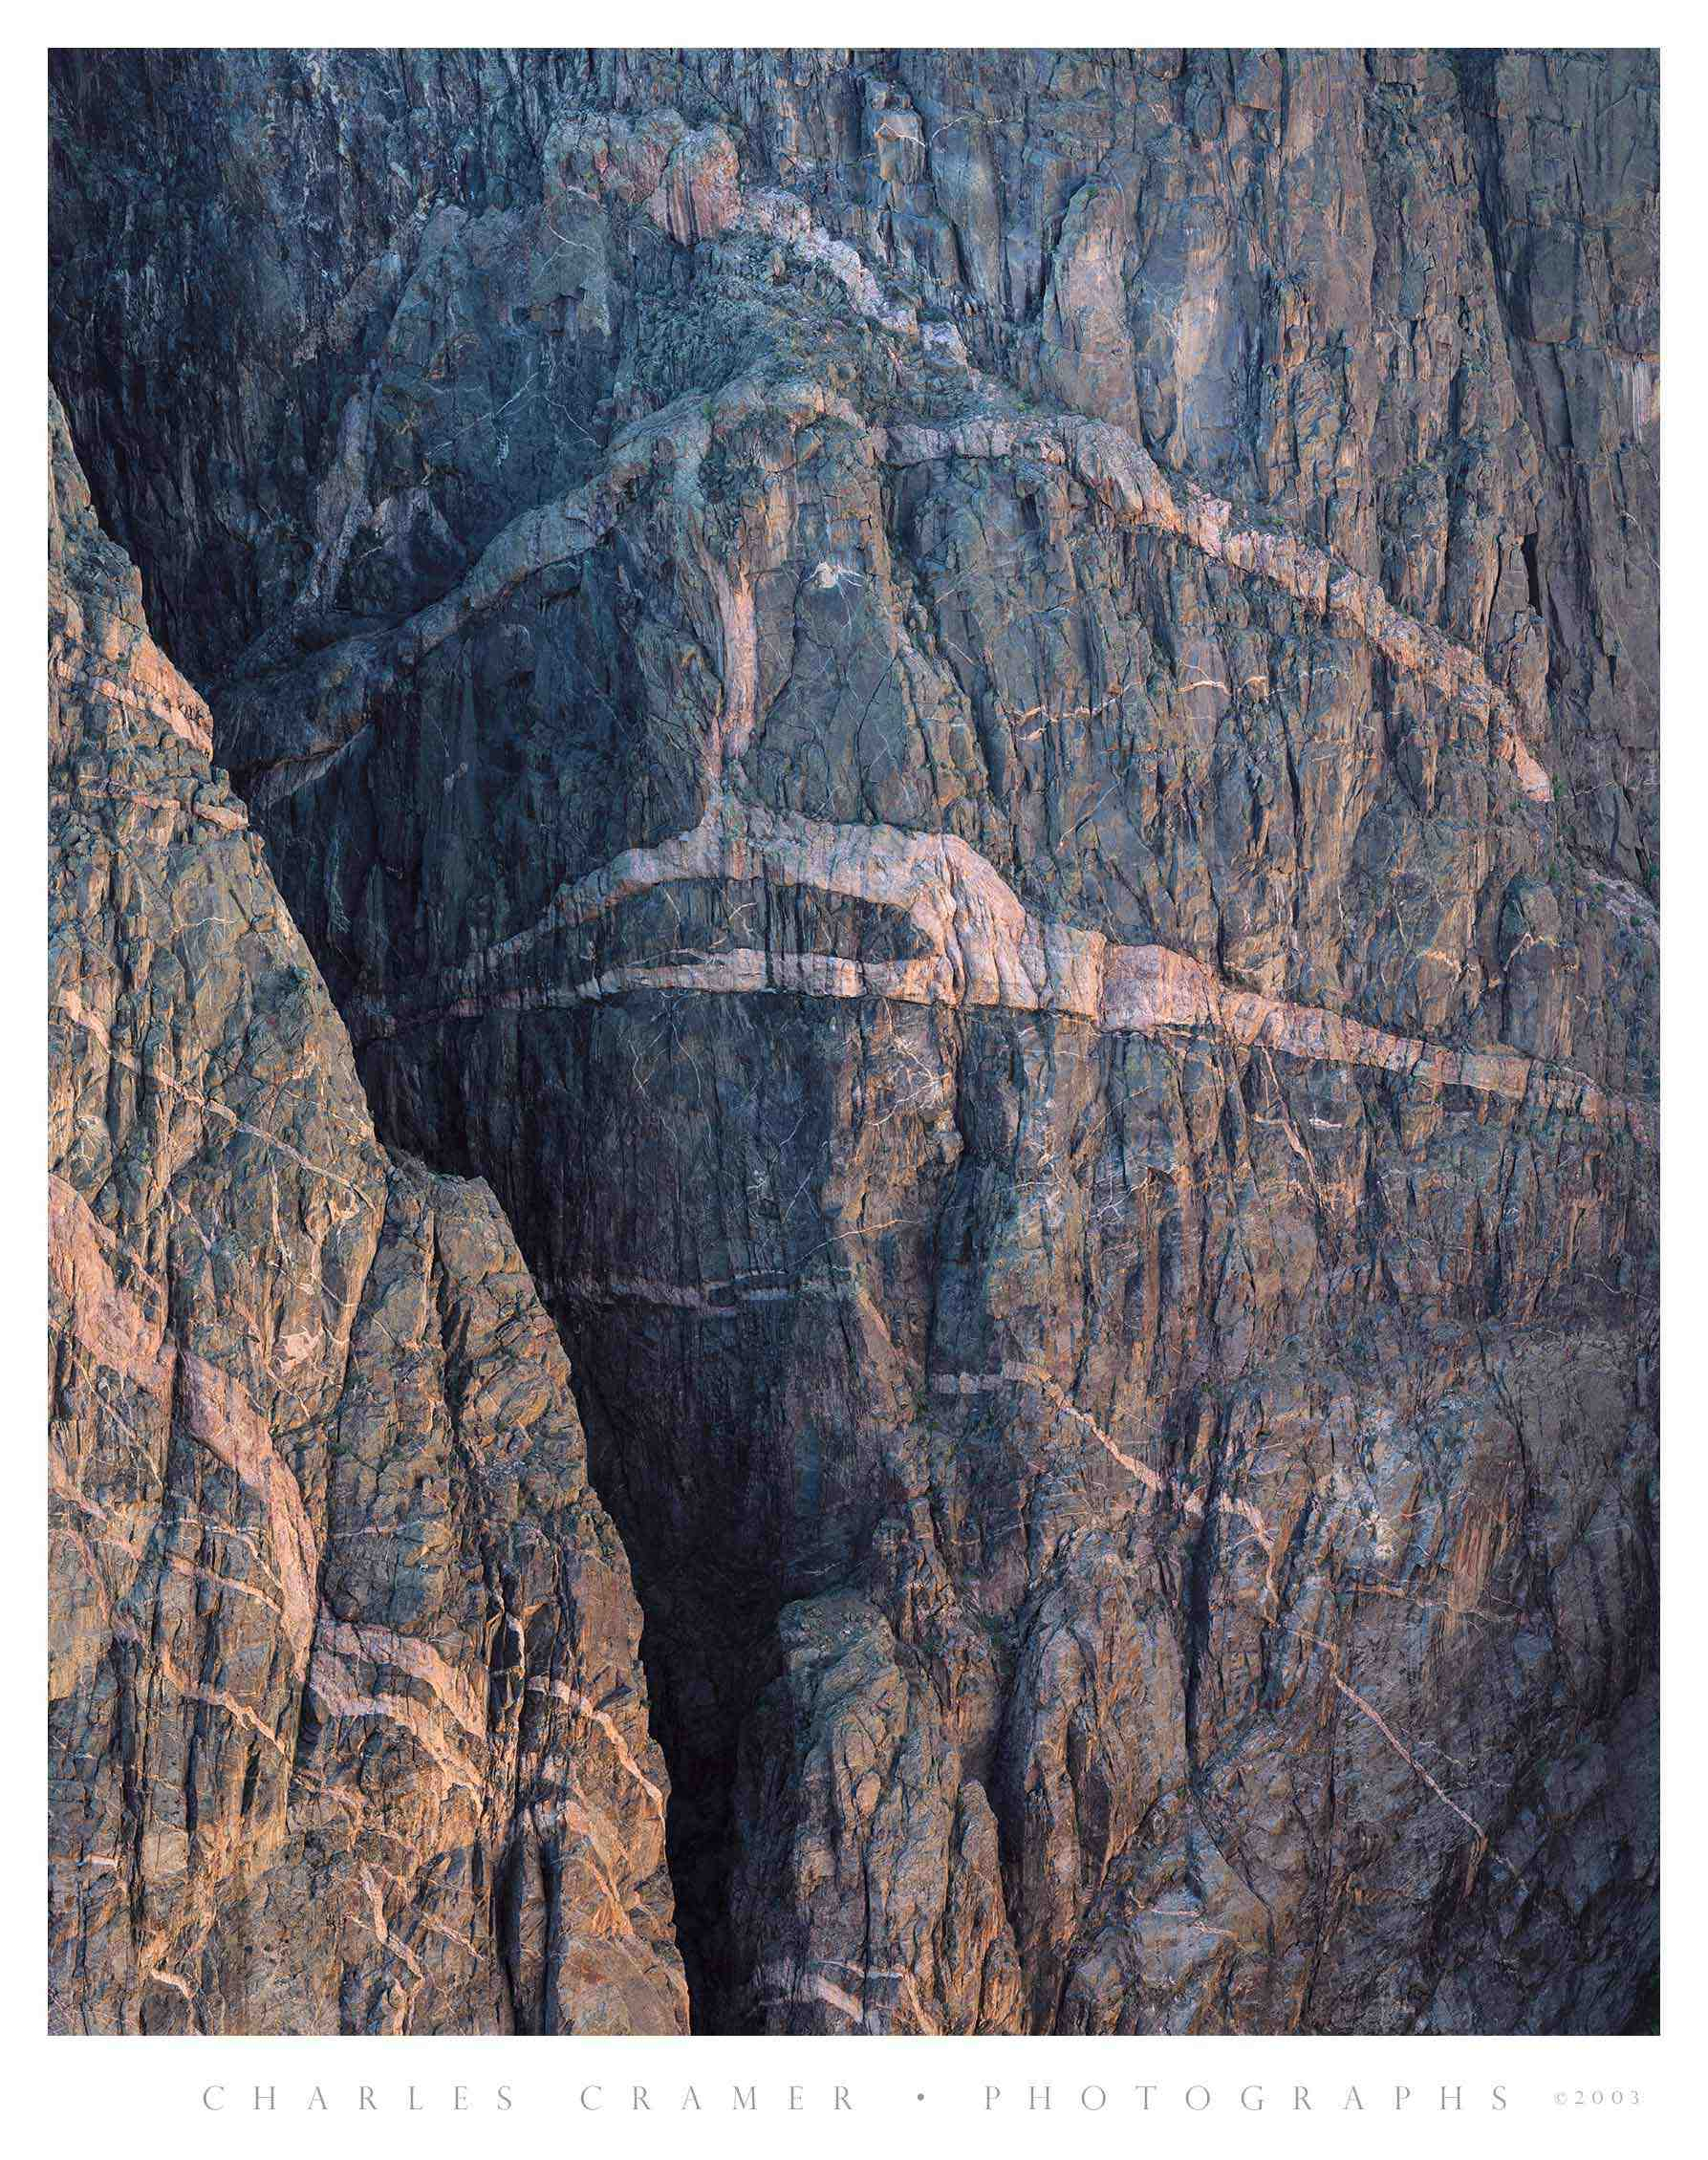 Evening, Wall Detail, Black Canyon of the Gunnison